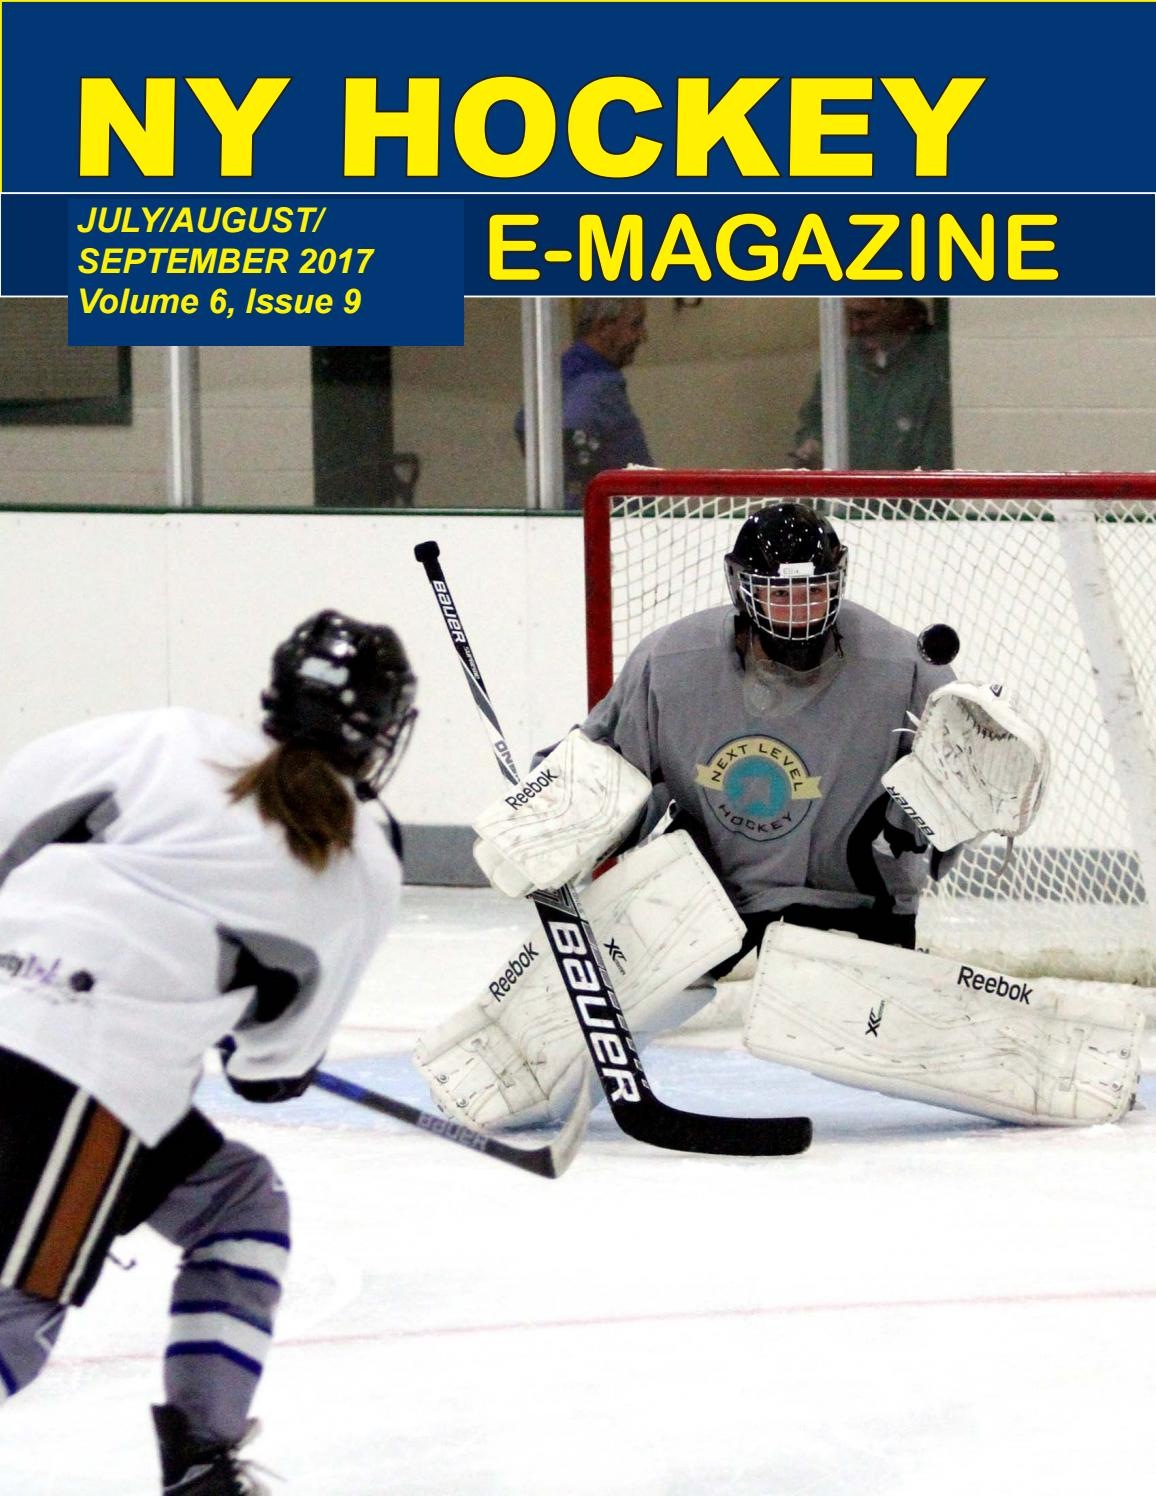 outlet store c7f95 a5ece Juy august september 2017 by NY Hockey OnLine - issuu